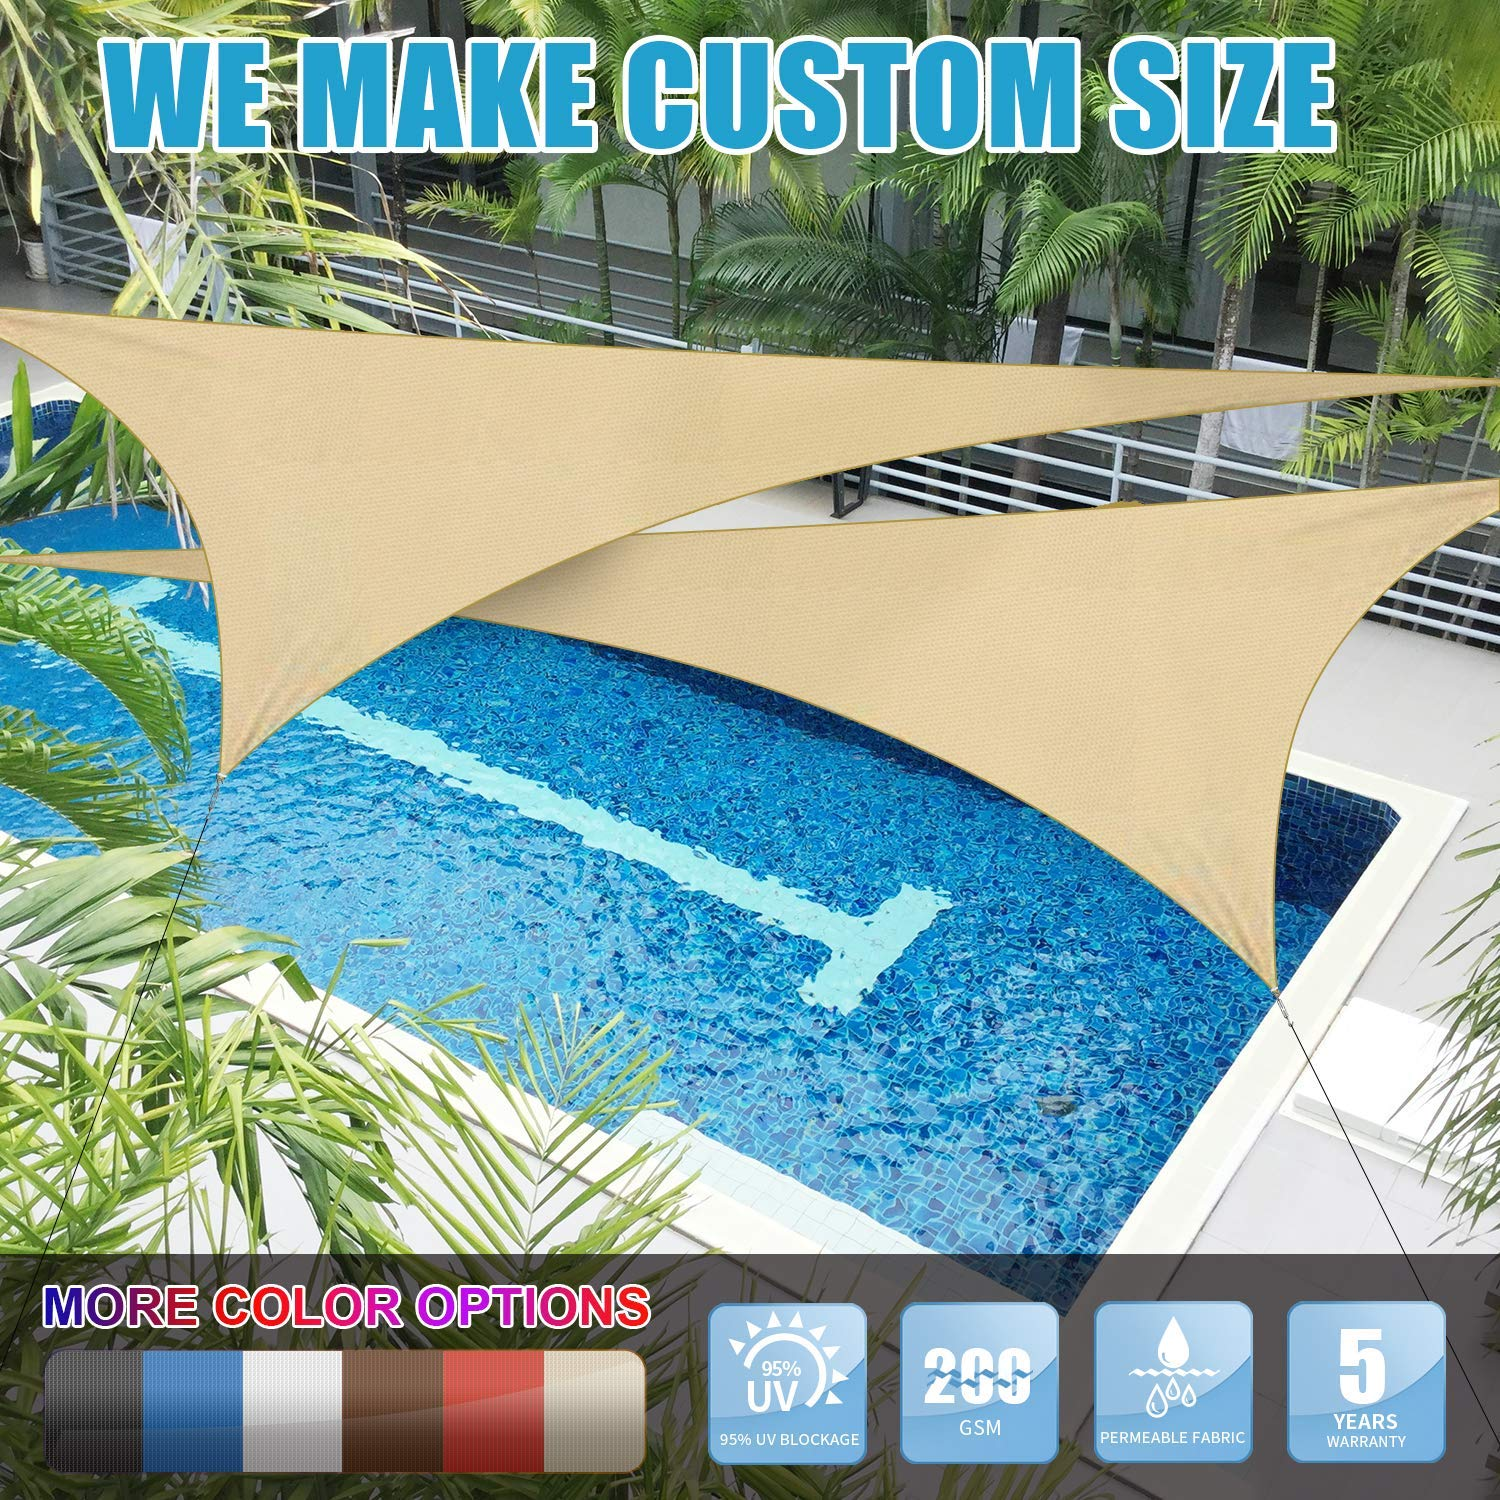 Amgo Custom Size Right Triangle 6 x 7 x 9.2 Beige Triangle Sun Shade Sail Canopy Awning, 95 UV Blockage, Water Air Permeable, Commercial and Residential Available for Custom Sizes